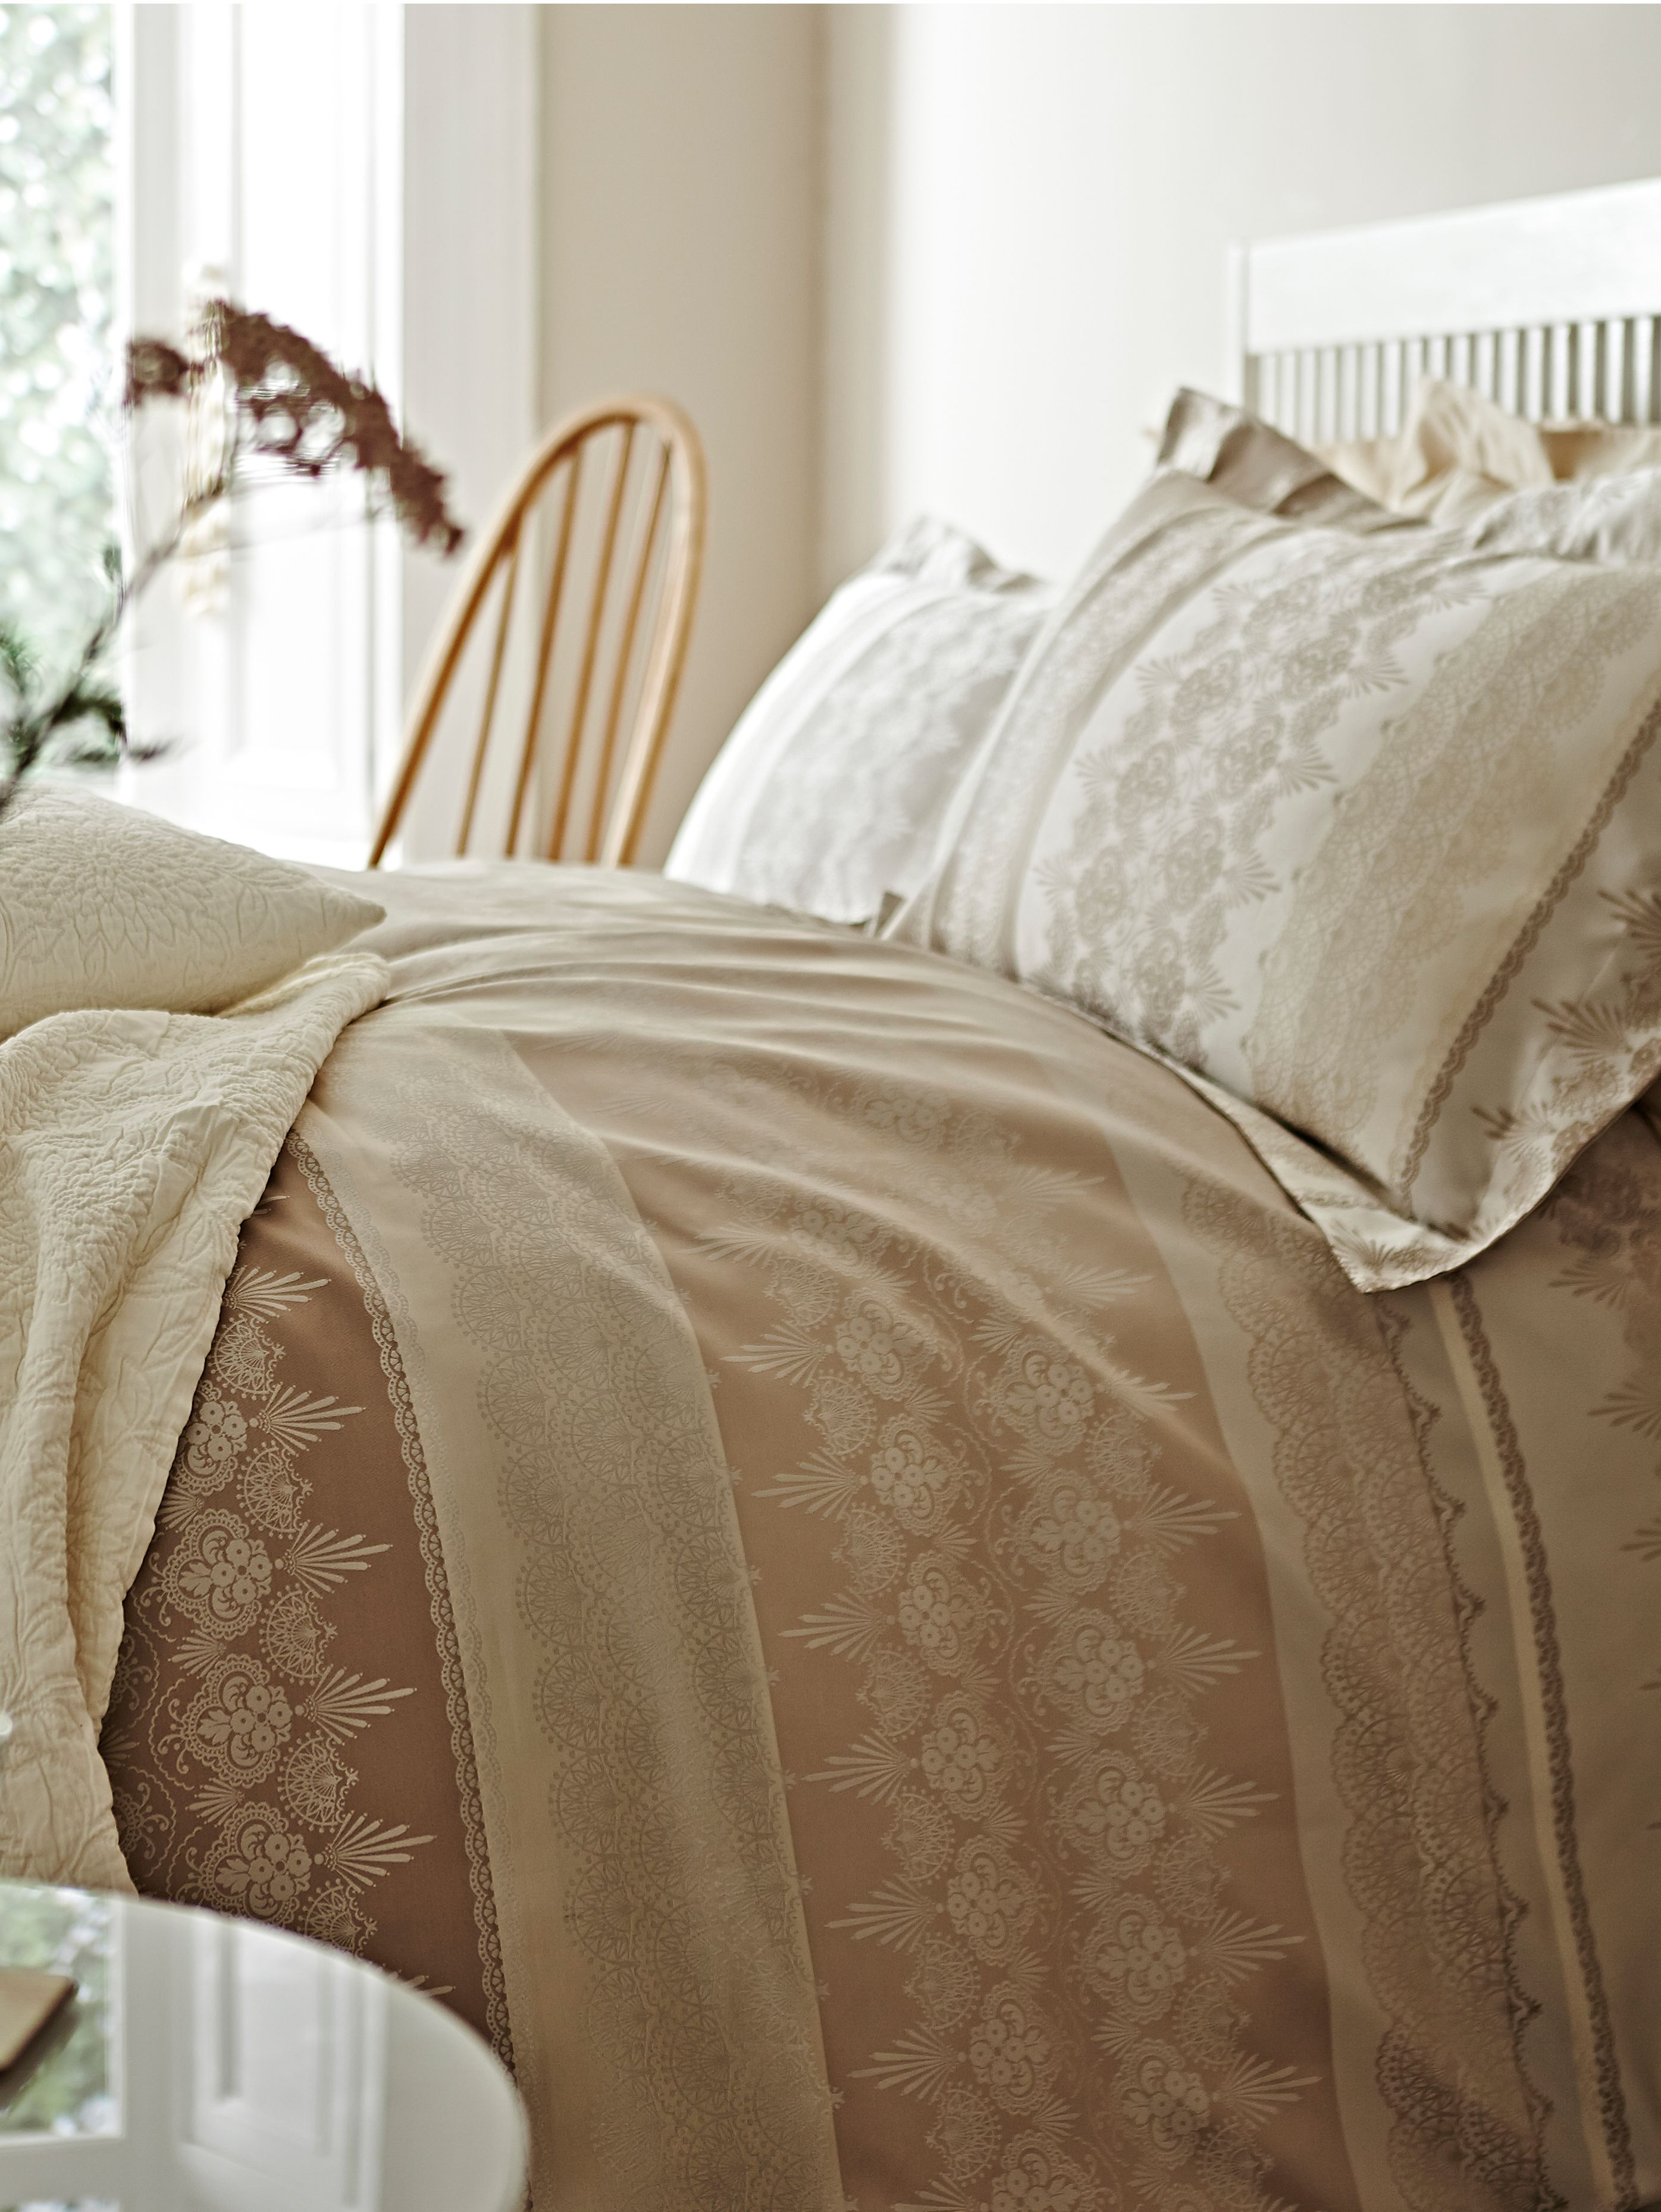 Lace jacquard super king duvet set